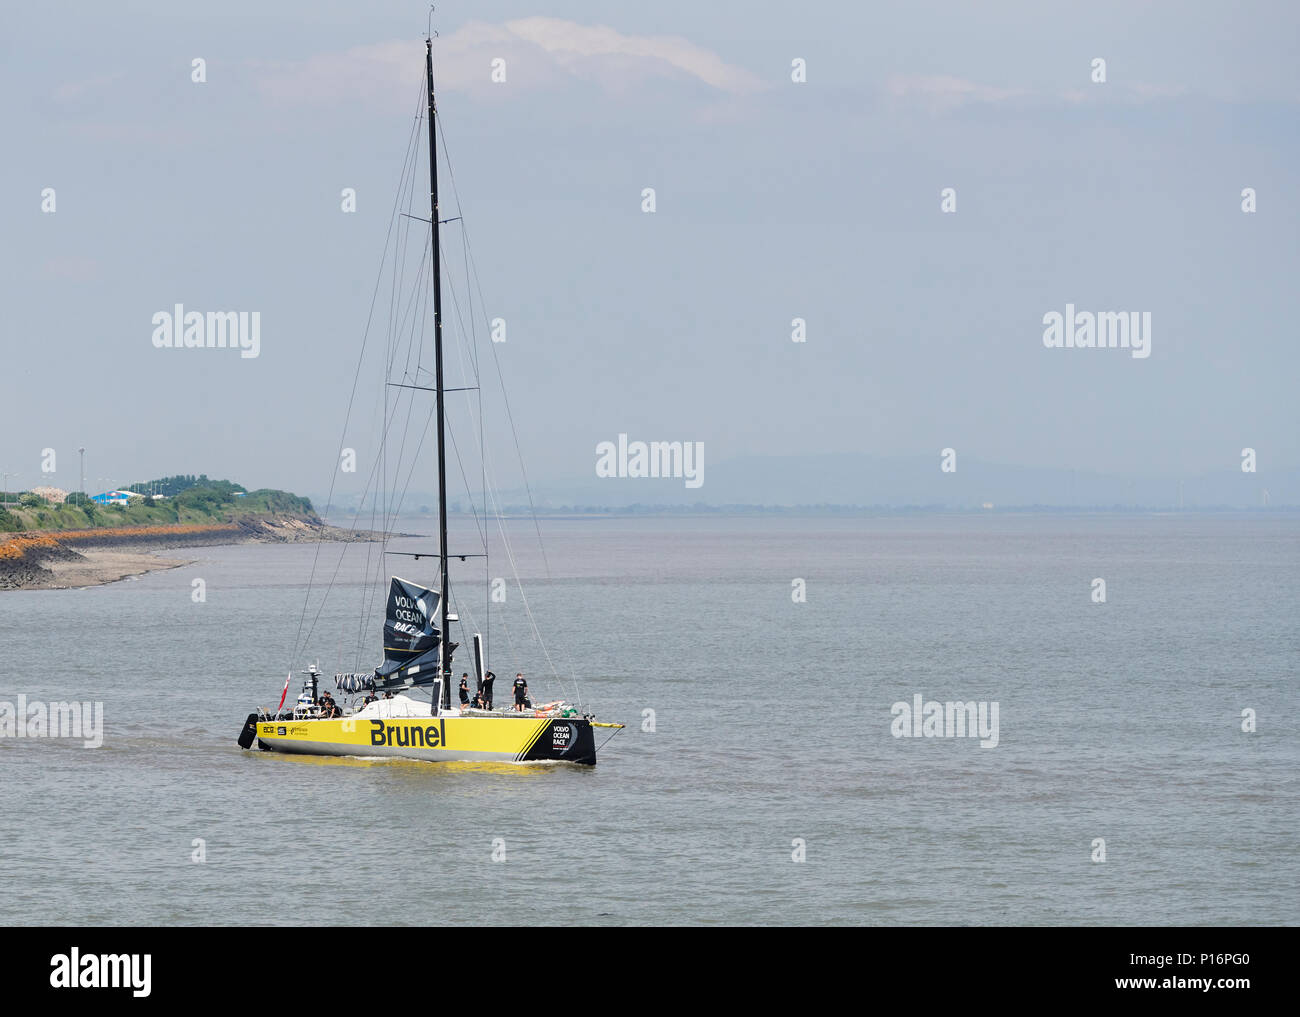 Cardiff Bay, Cardiff, Wales UK. 10th June 2018  Brunel,  leaves port to prepare for the start of The Volvo Ocean Race  Leg 10 Cardiff to Gothenburg. Credit: Phillip Thomas/Alamy Live News Stock Photo